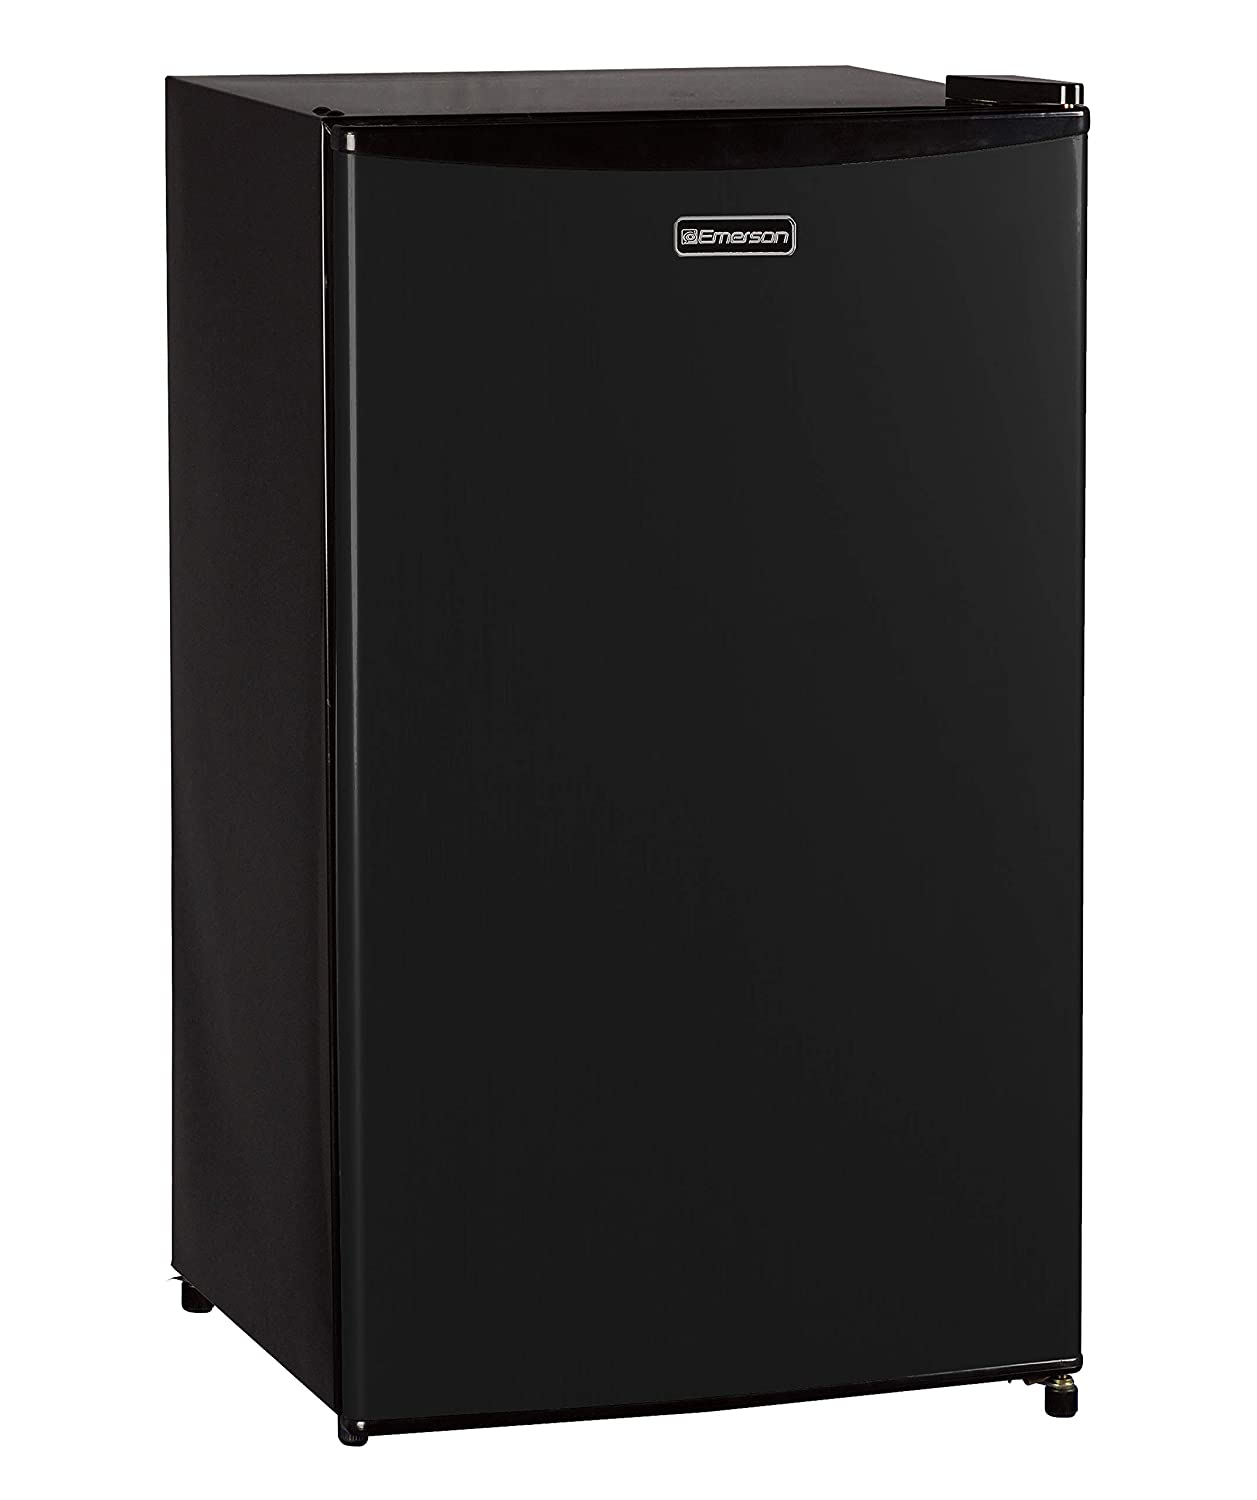 Emerson CR330BE 3.3 Cubic Foot Compact Single Door Refrigerator, Black